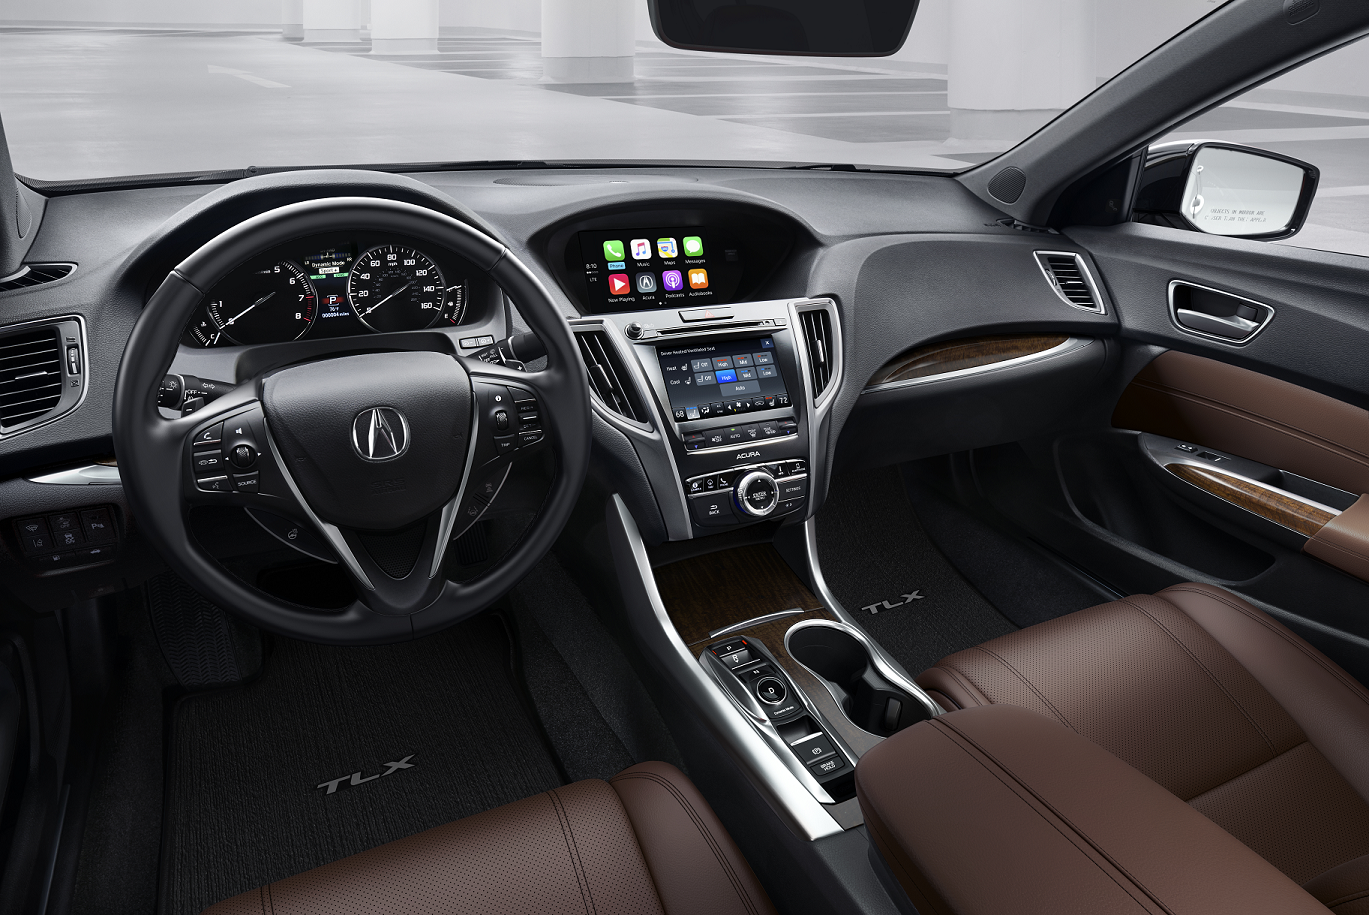 2019 Acura V6 - Interior Dashboard